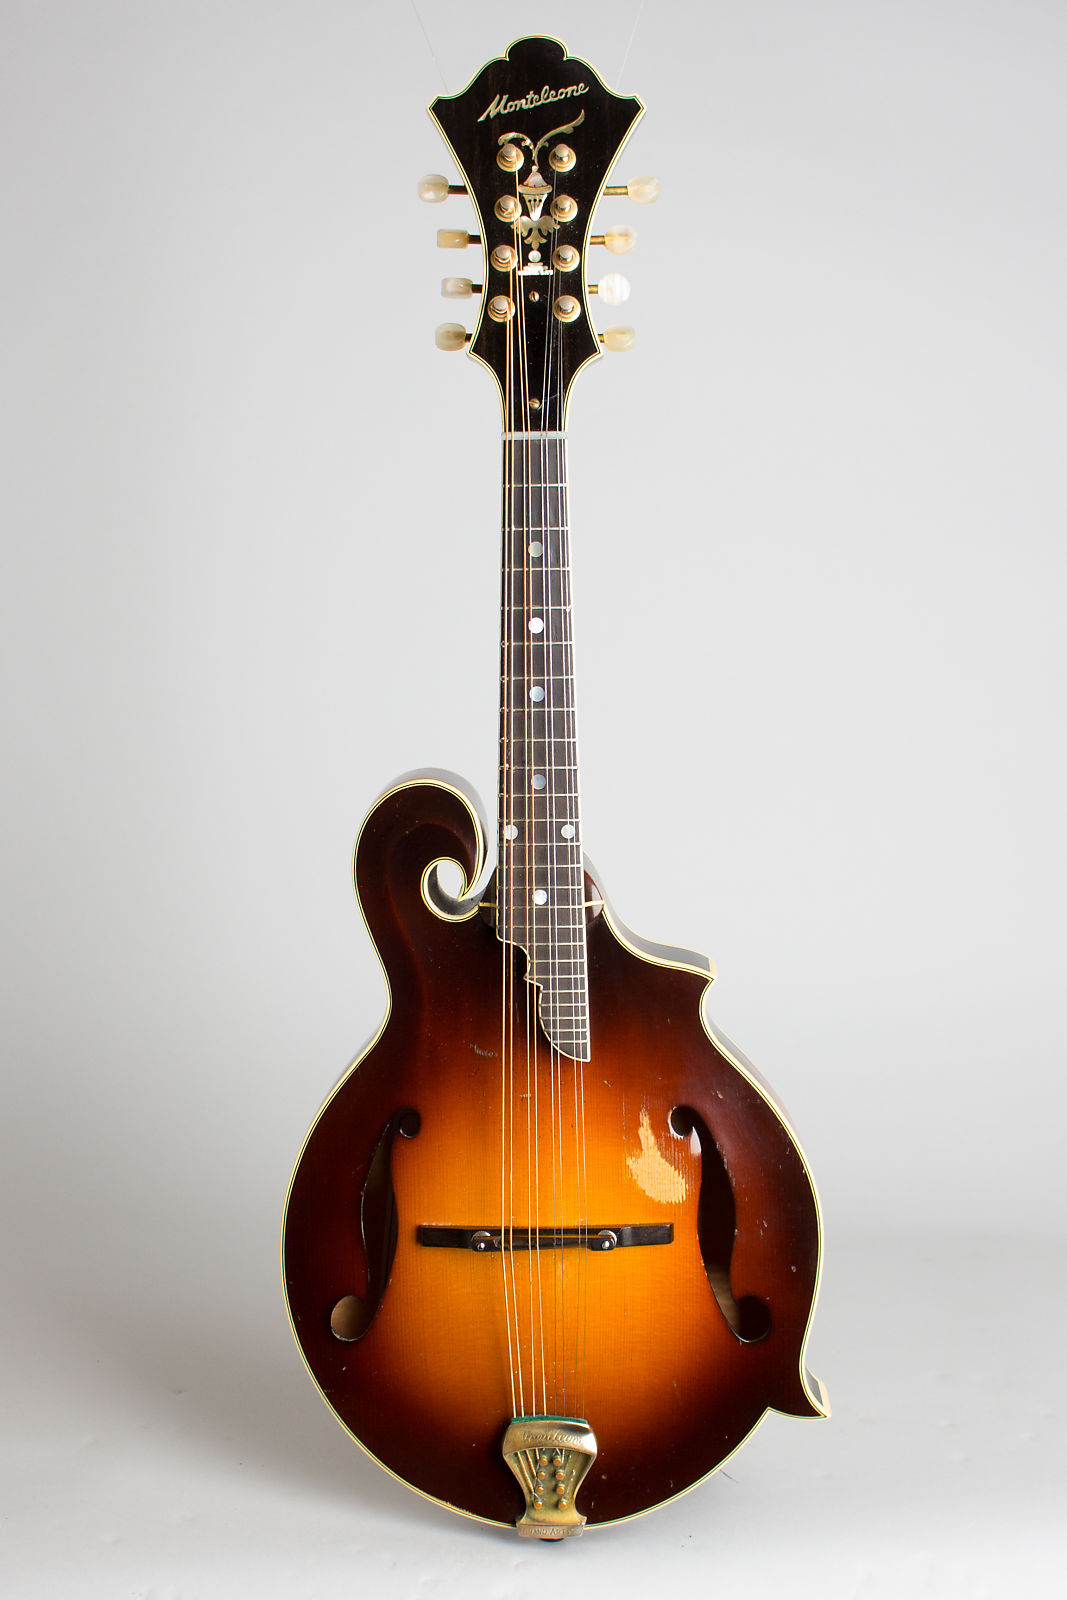 Monteleone  Grand Artist Carved Top Mandolin (1982), ser. #76, original black hard shell case.